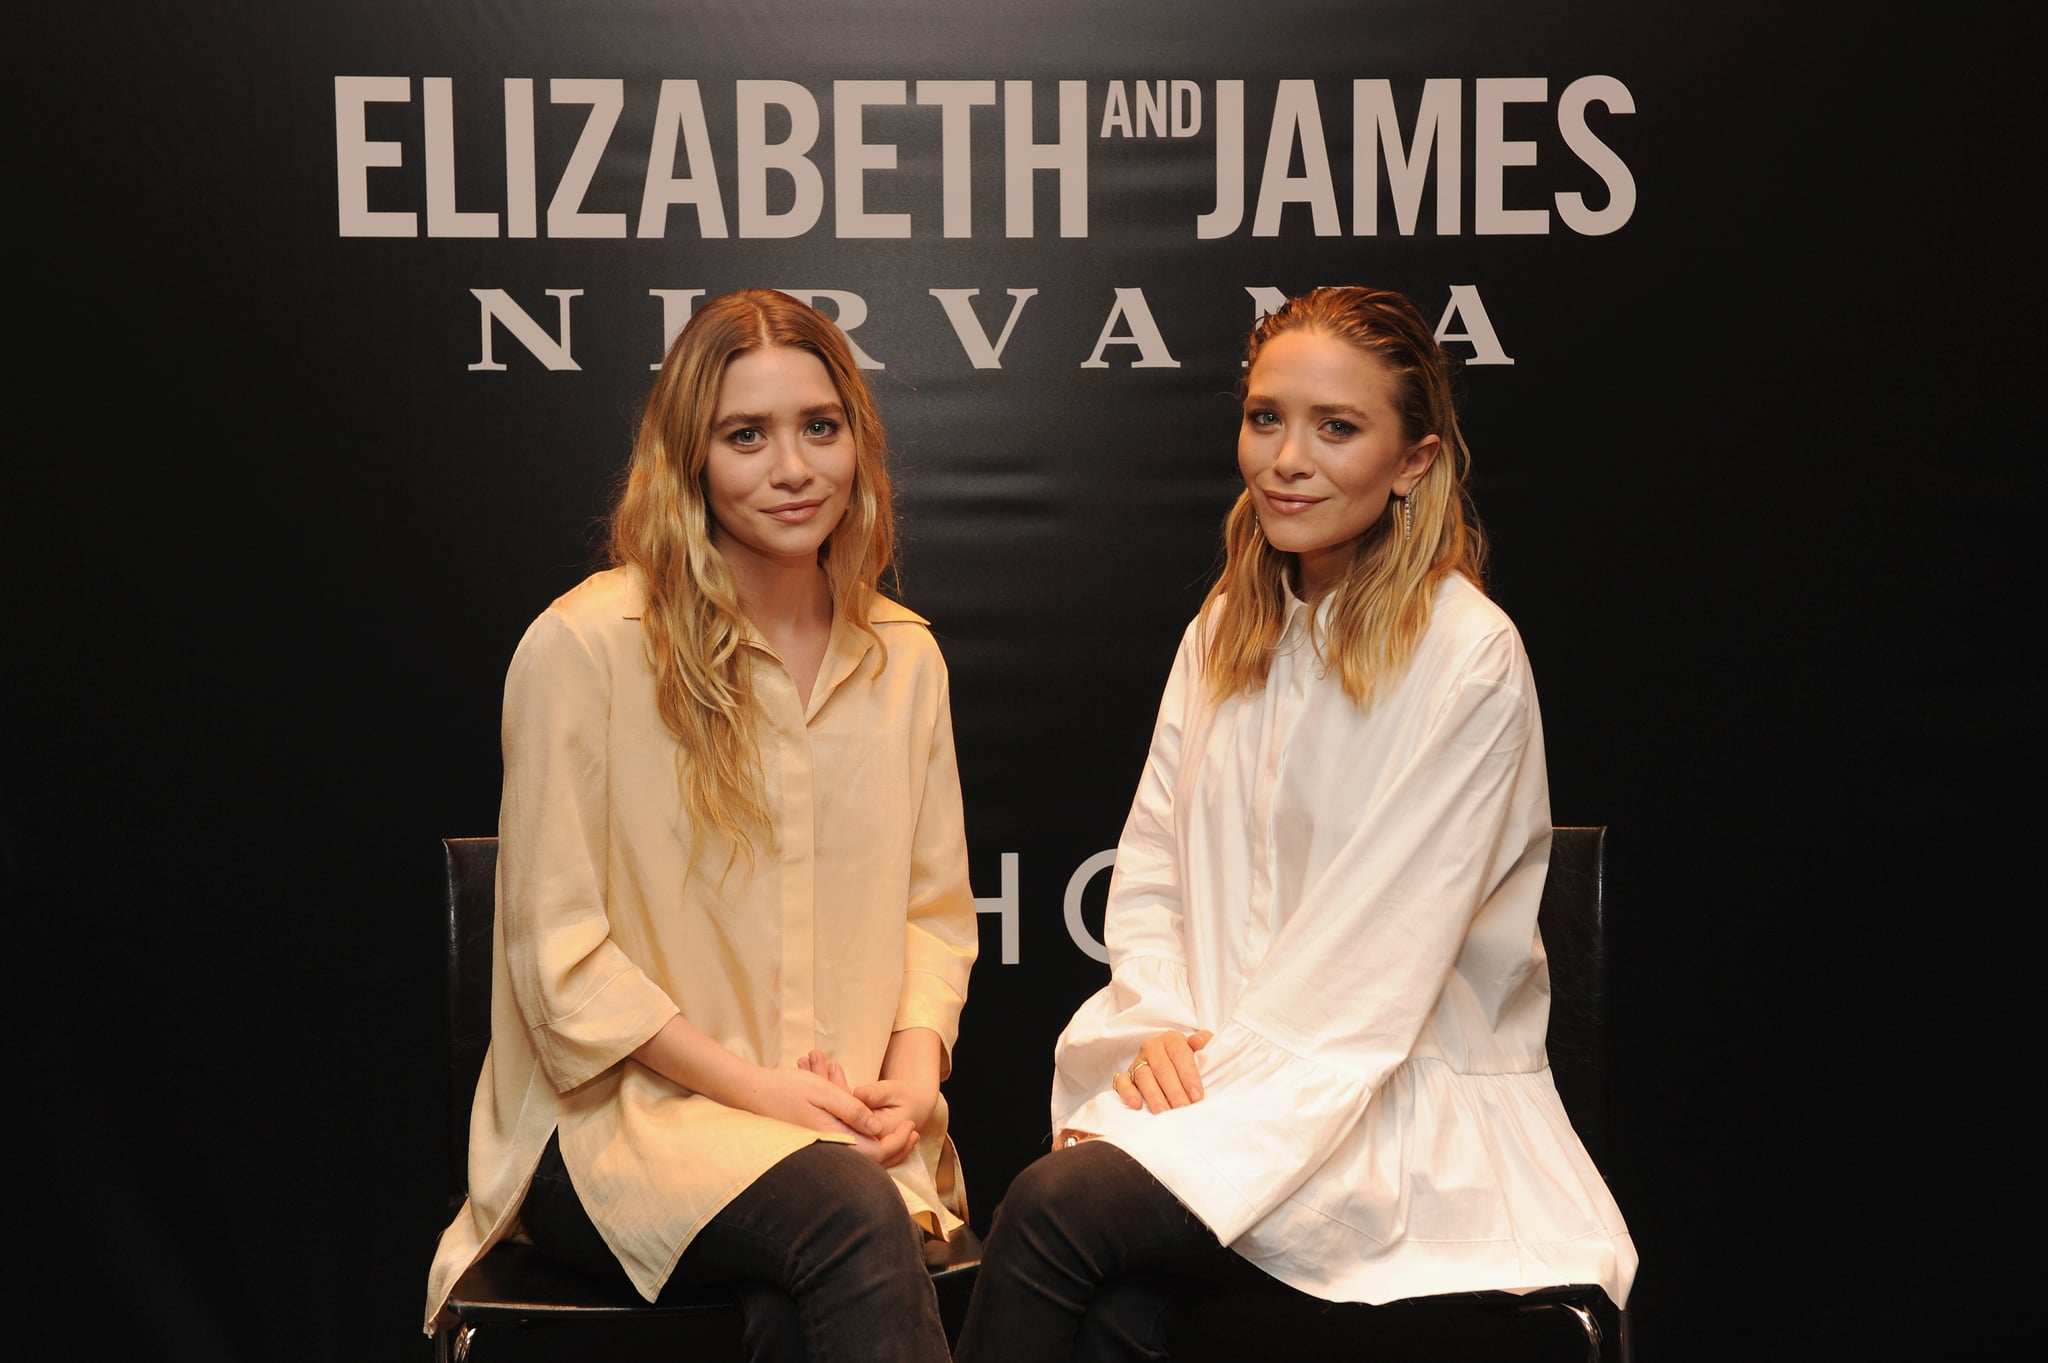 While Ashley kept her long blond locks styled simply, Mary-Kate slicked back the crown of her shorter style at the Elizabeth and James Sephora VIB Rouge Event in 2014.